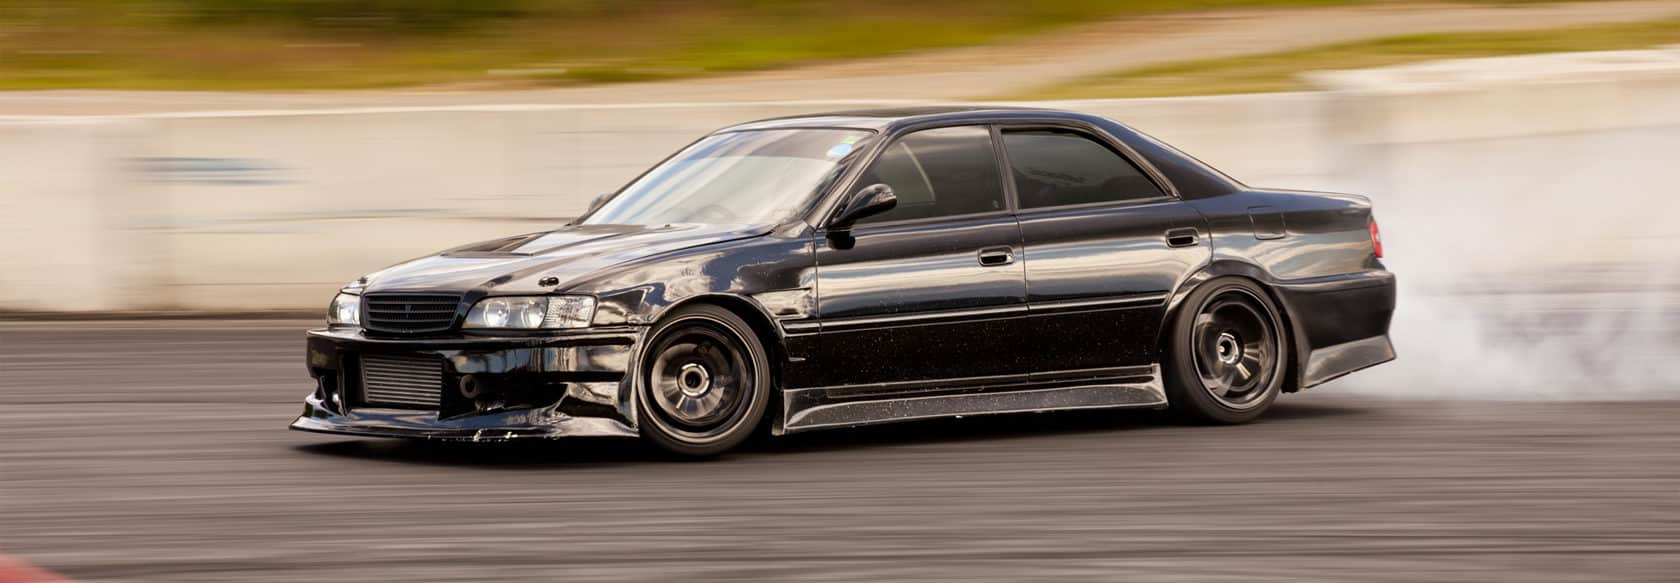 Toyota Chaser JZX100 https://www.stancenation.com/2012/08/04/the-dream-chaser/